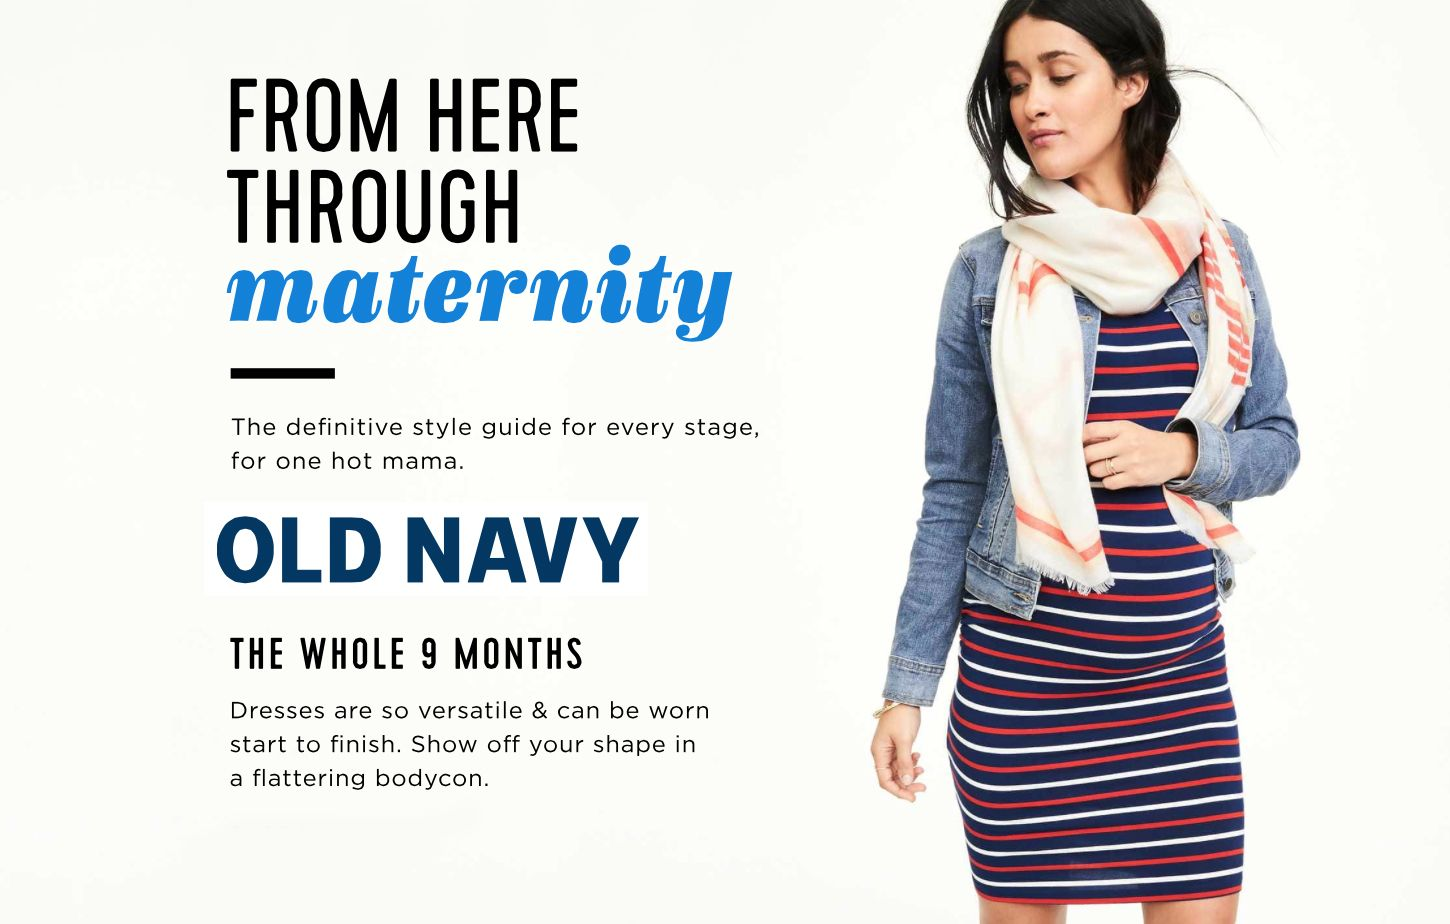 Expecting Models Agency For Old Navy Maternity